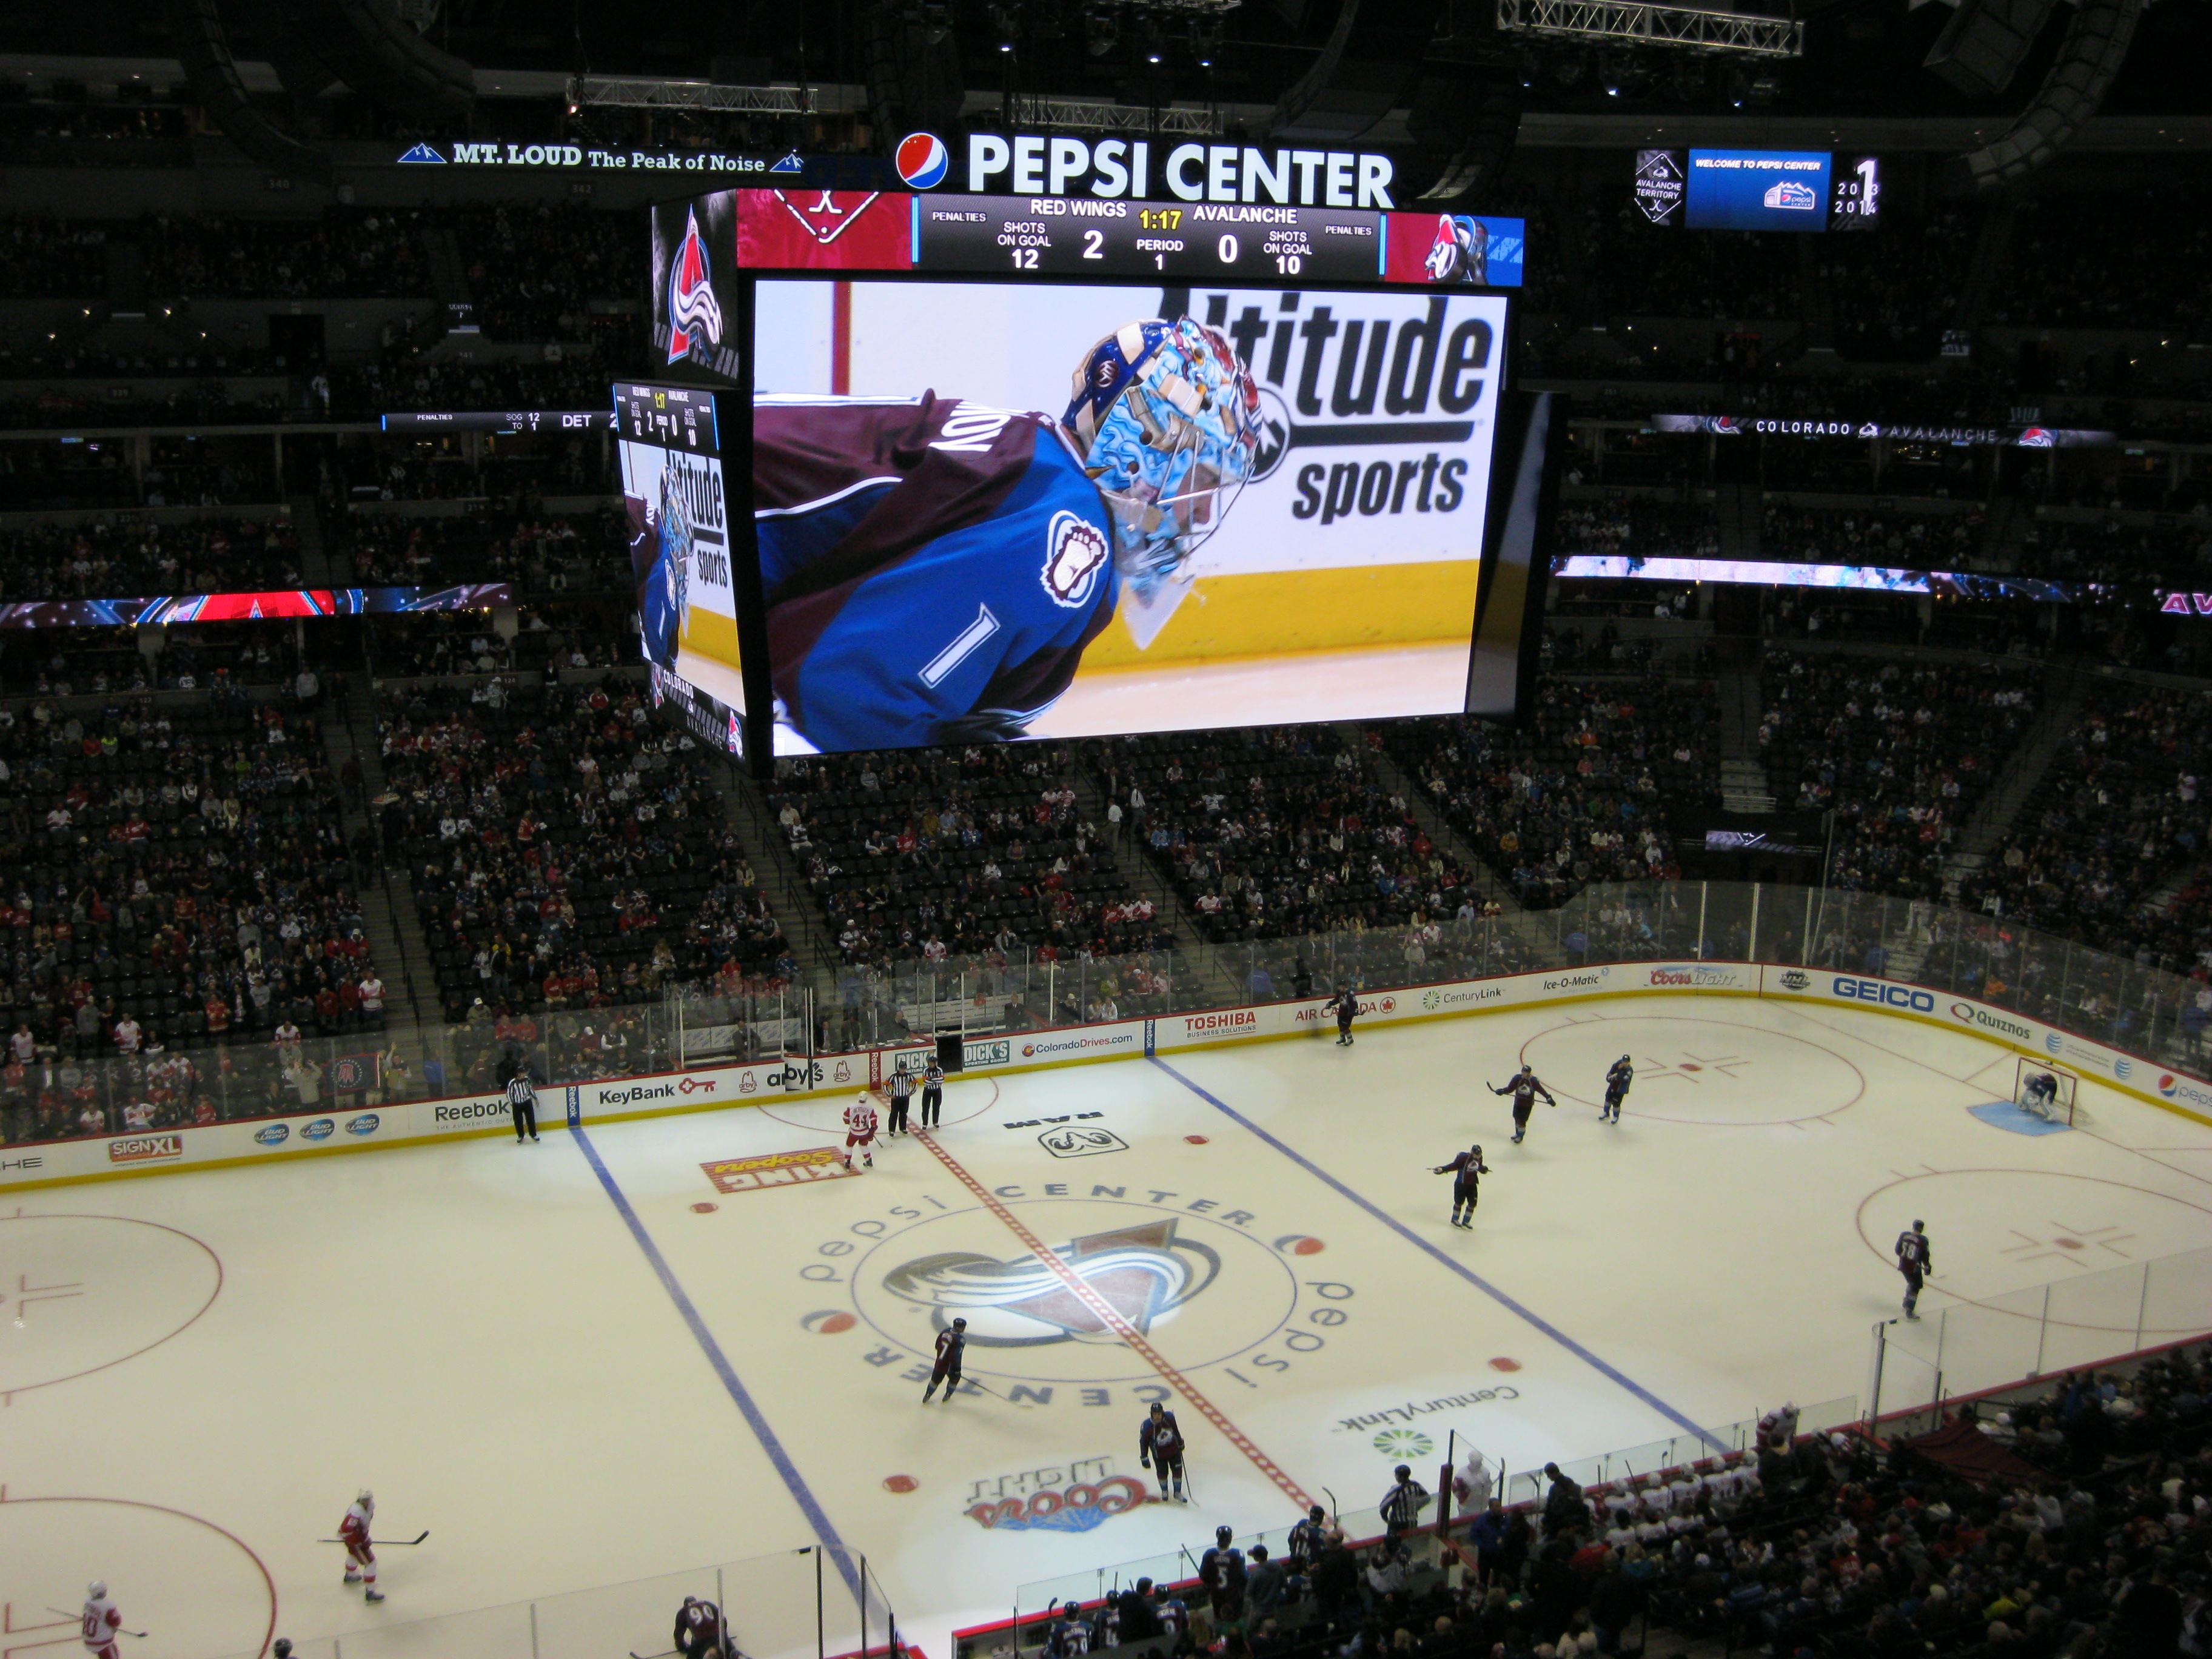 Pepsi Center: Tech Focus, Part 2: Five Sports Venues Show Off Their Sound